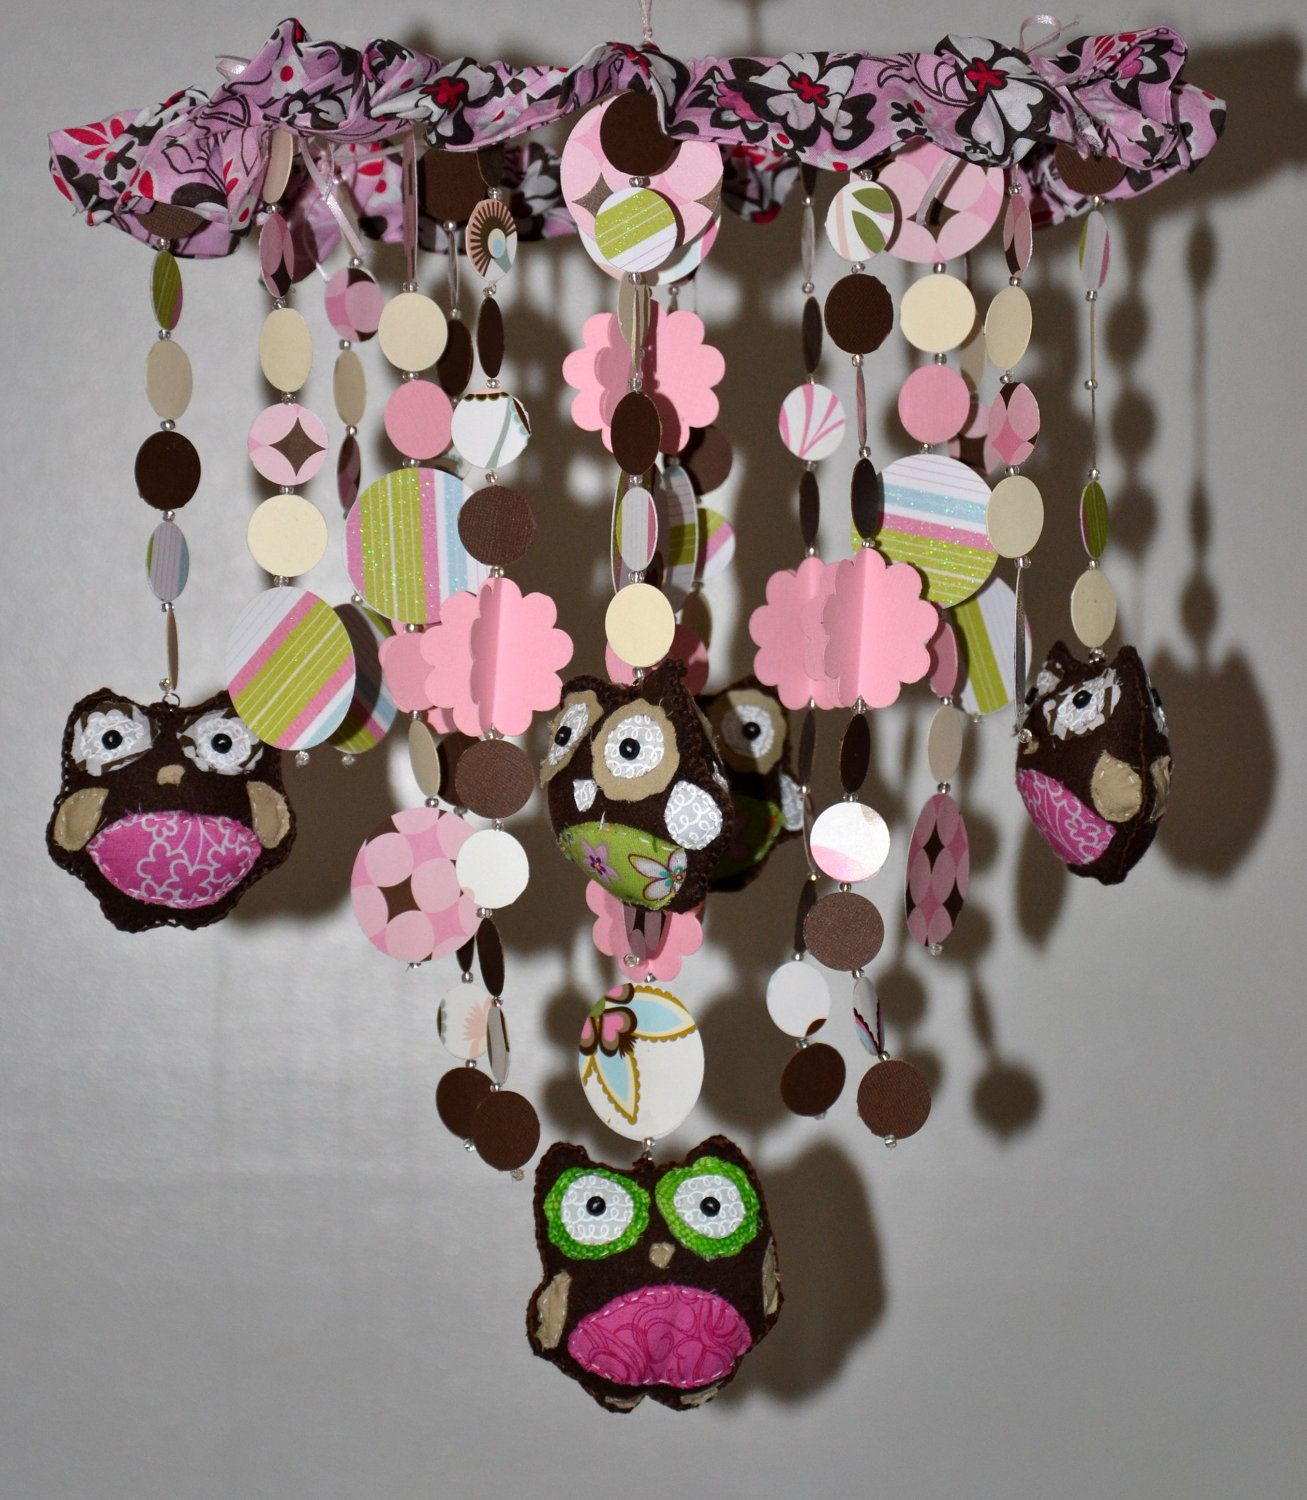 Too hoot for owls crib mobile pinkbrown nursery decor baby too hoot for owls crib mobile pinkbrown nursery decor baby shower gift baby chandelier by pearlescent arubaitofo Gallery